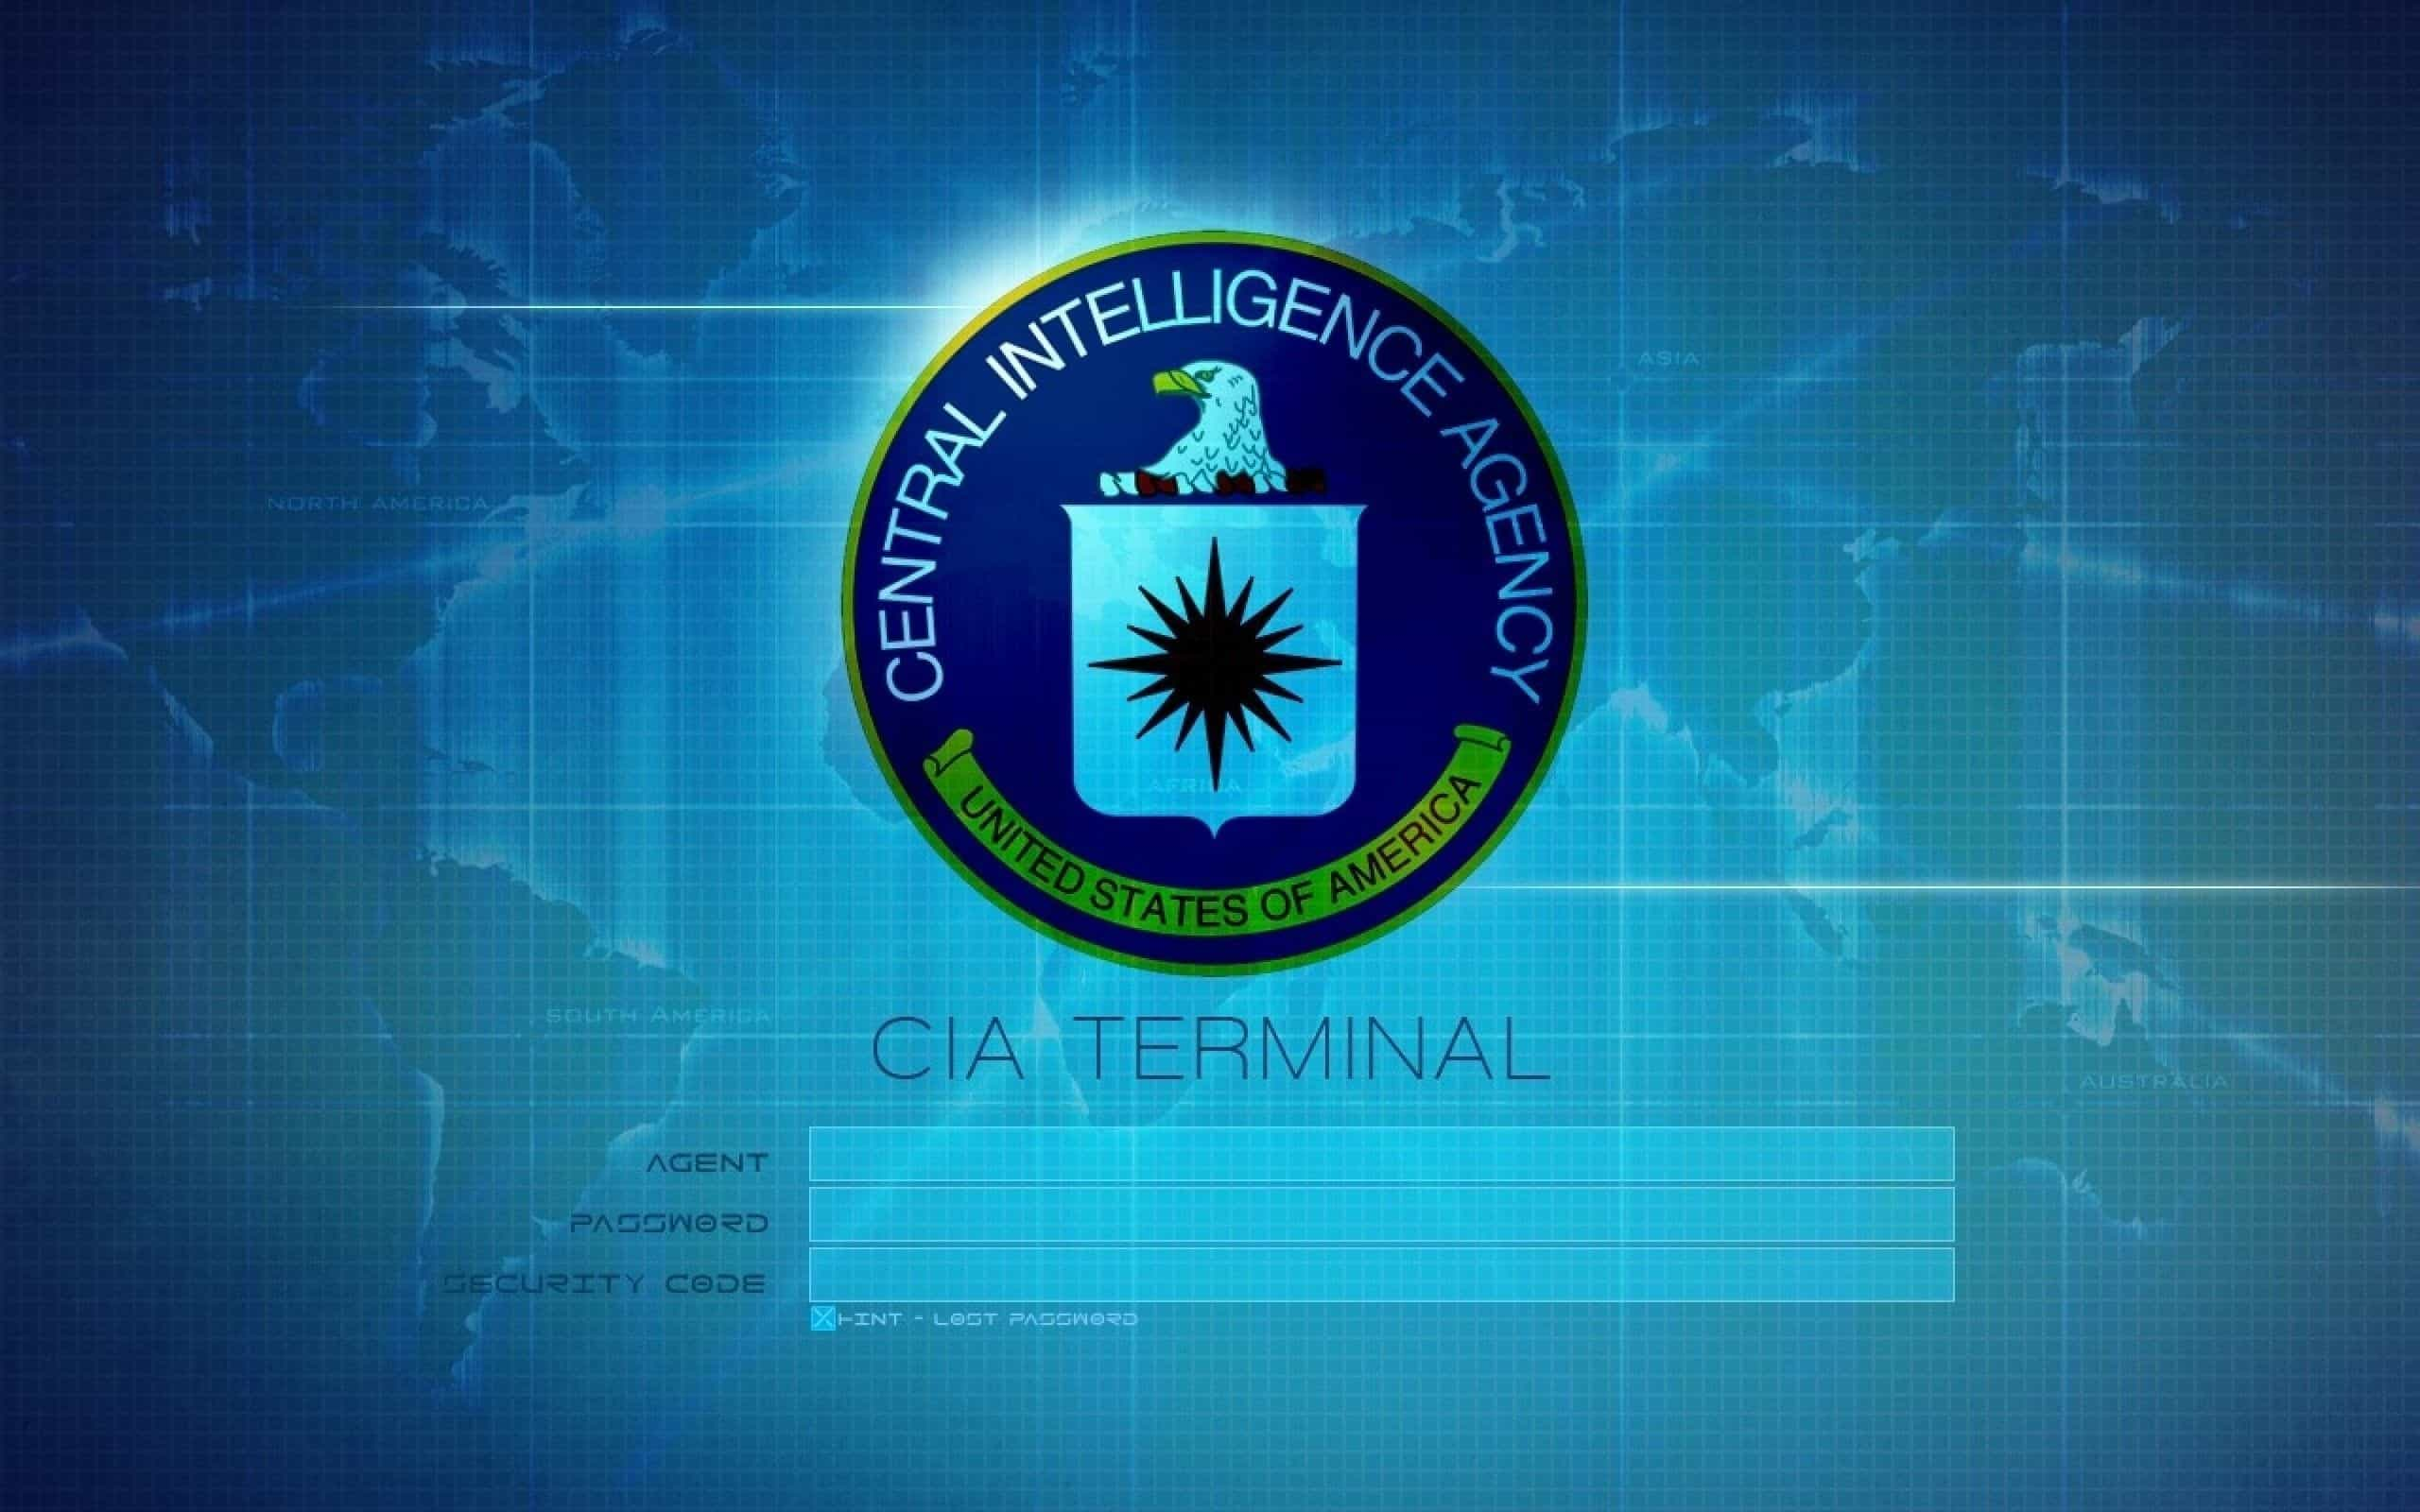 Crypto Leaks: Documents Reveal True Extent of CIA-BND Spy Operation